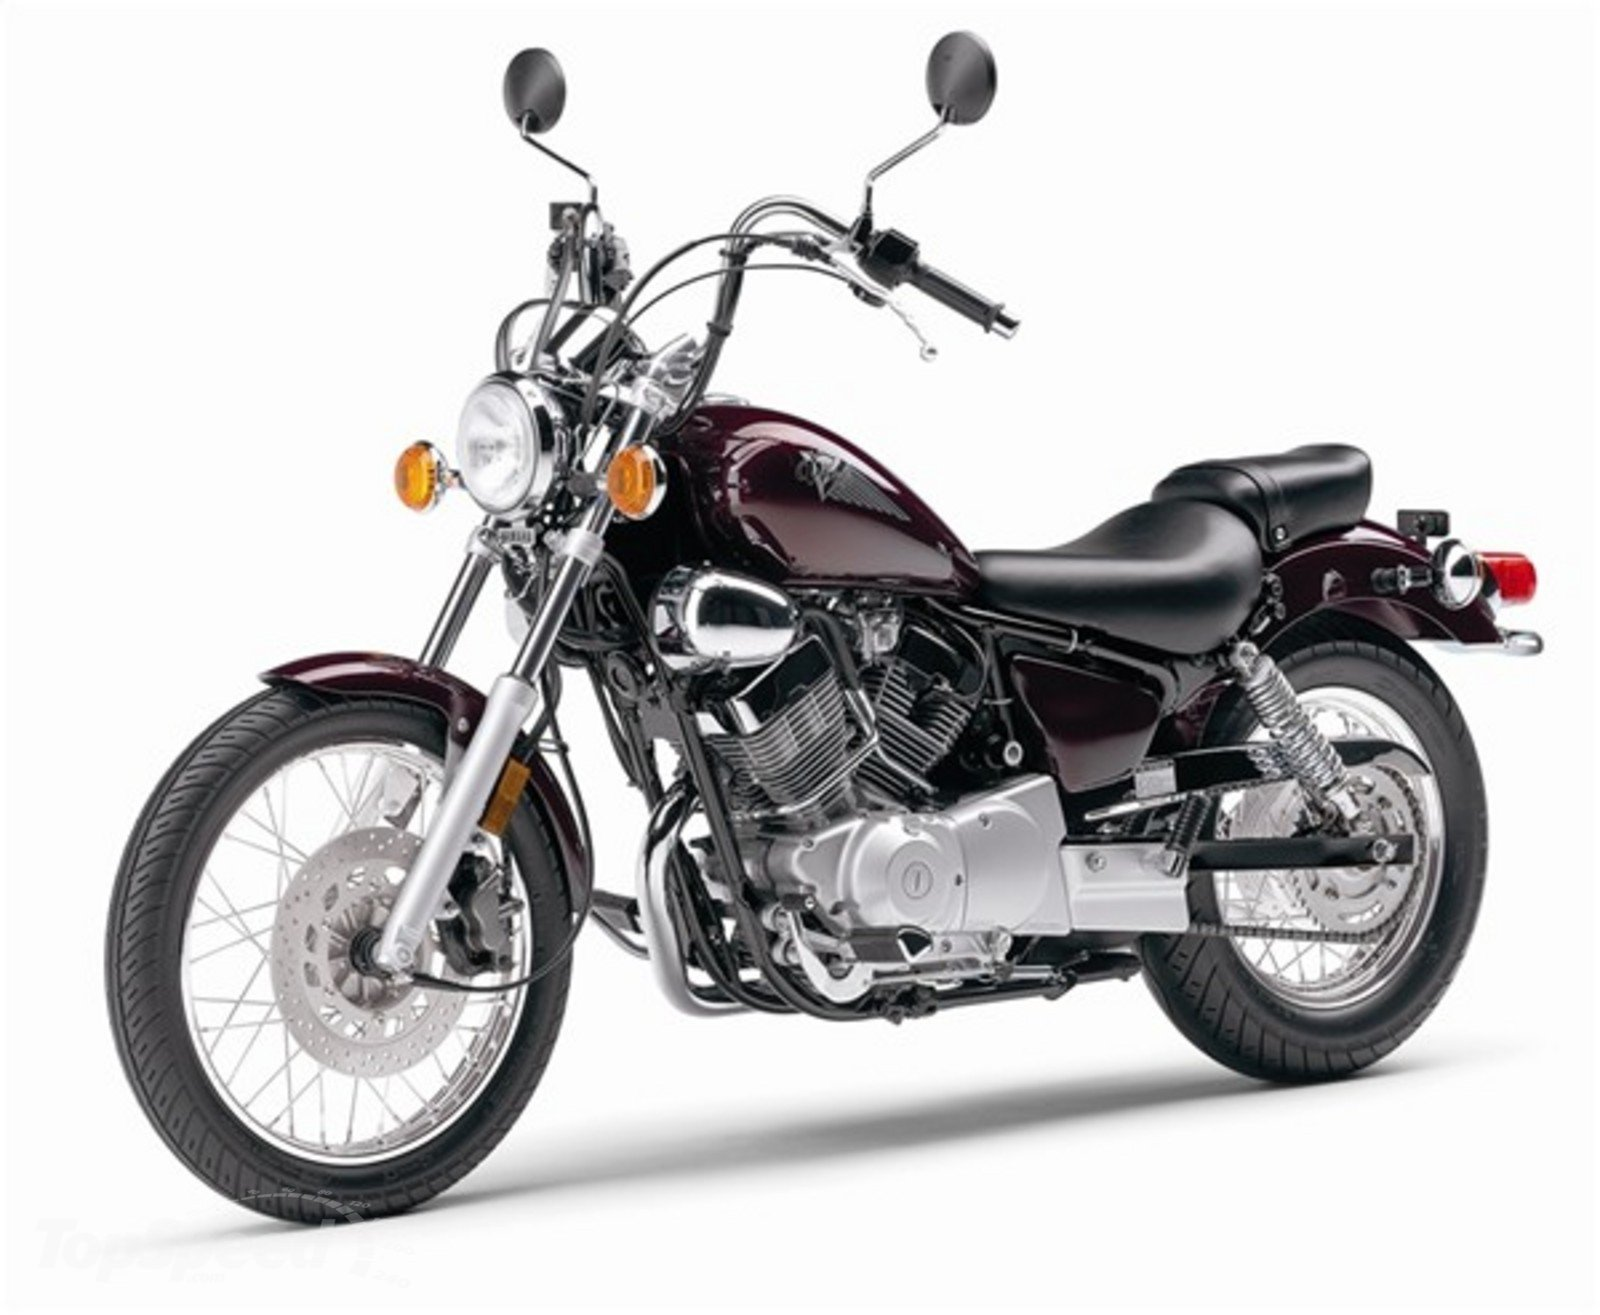 Yamaha virago photo - 4